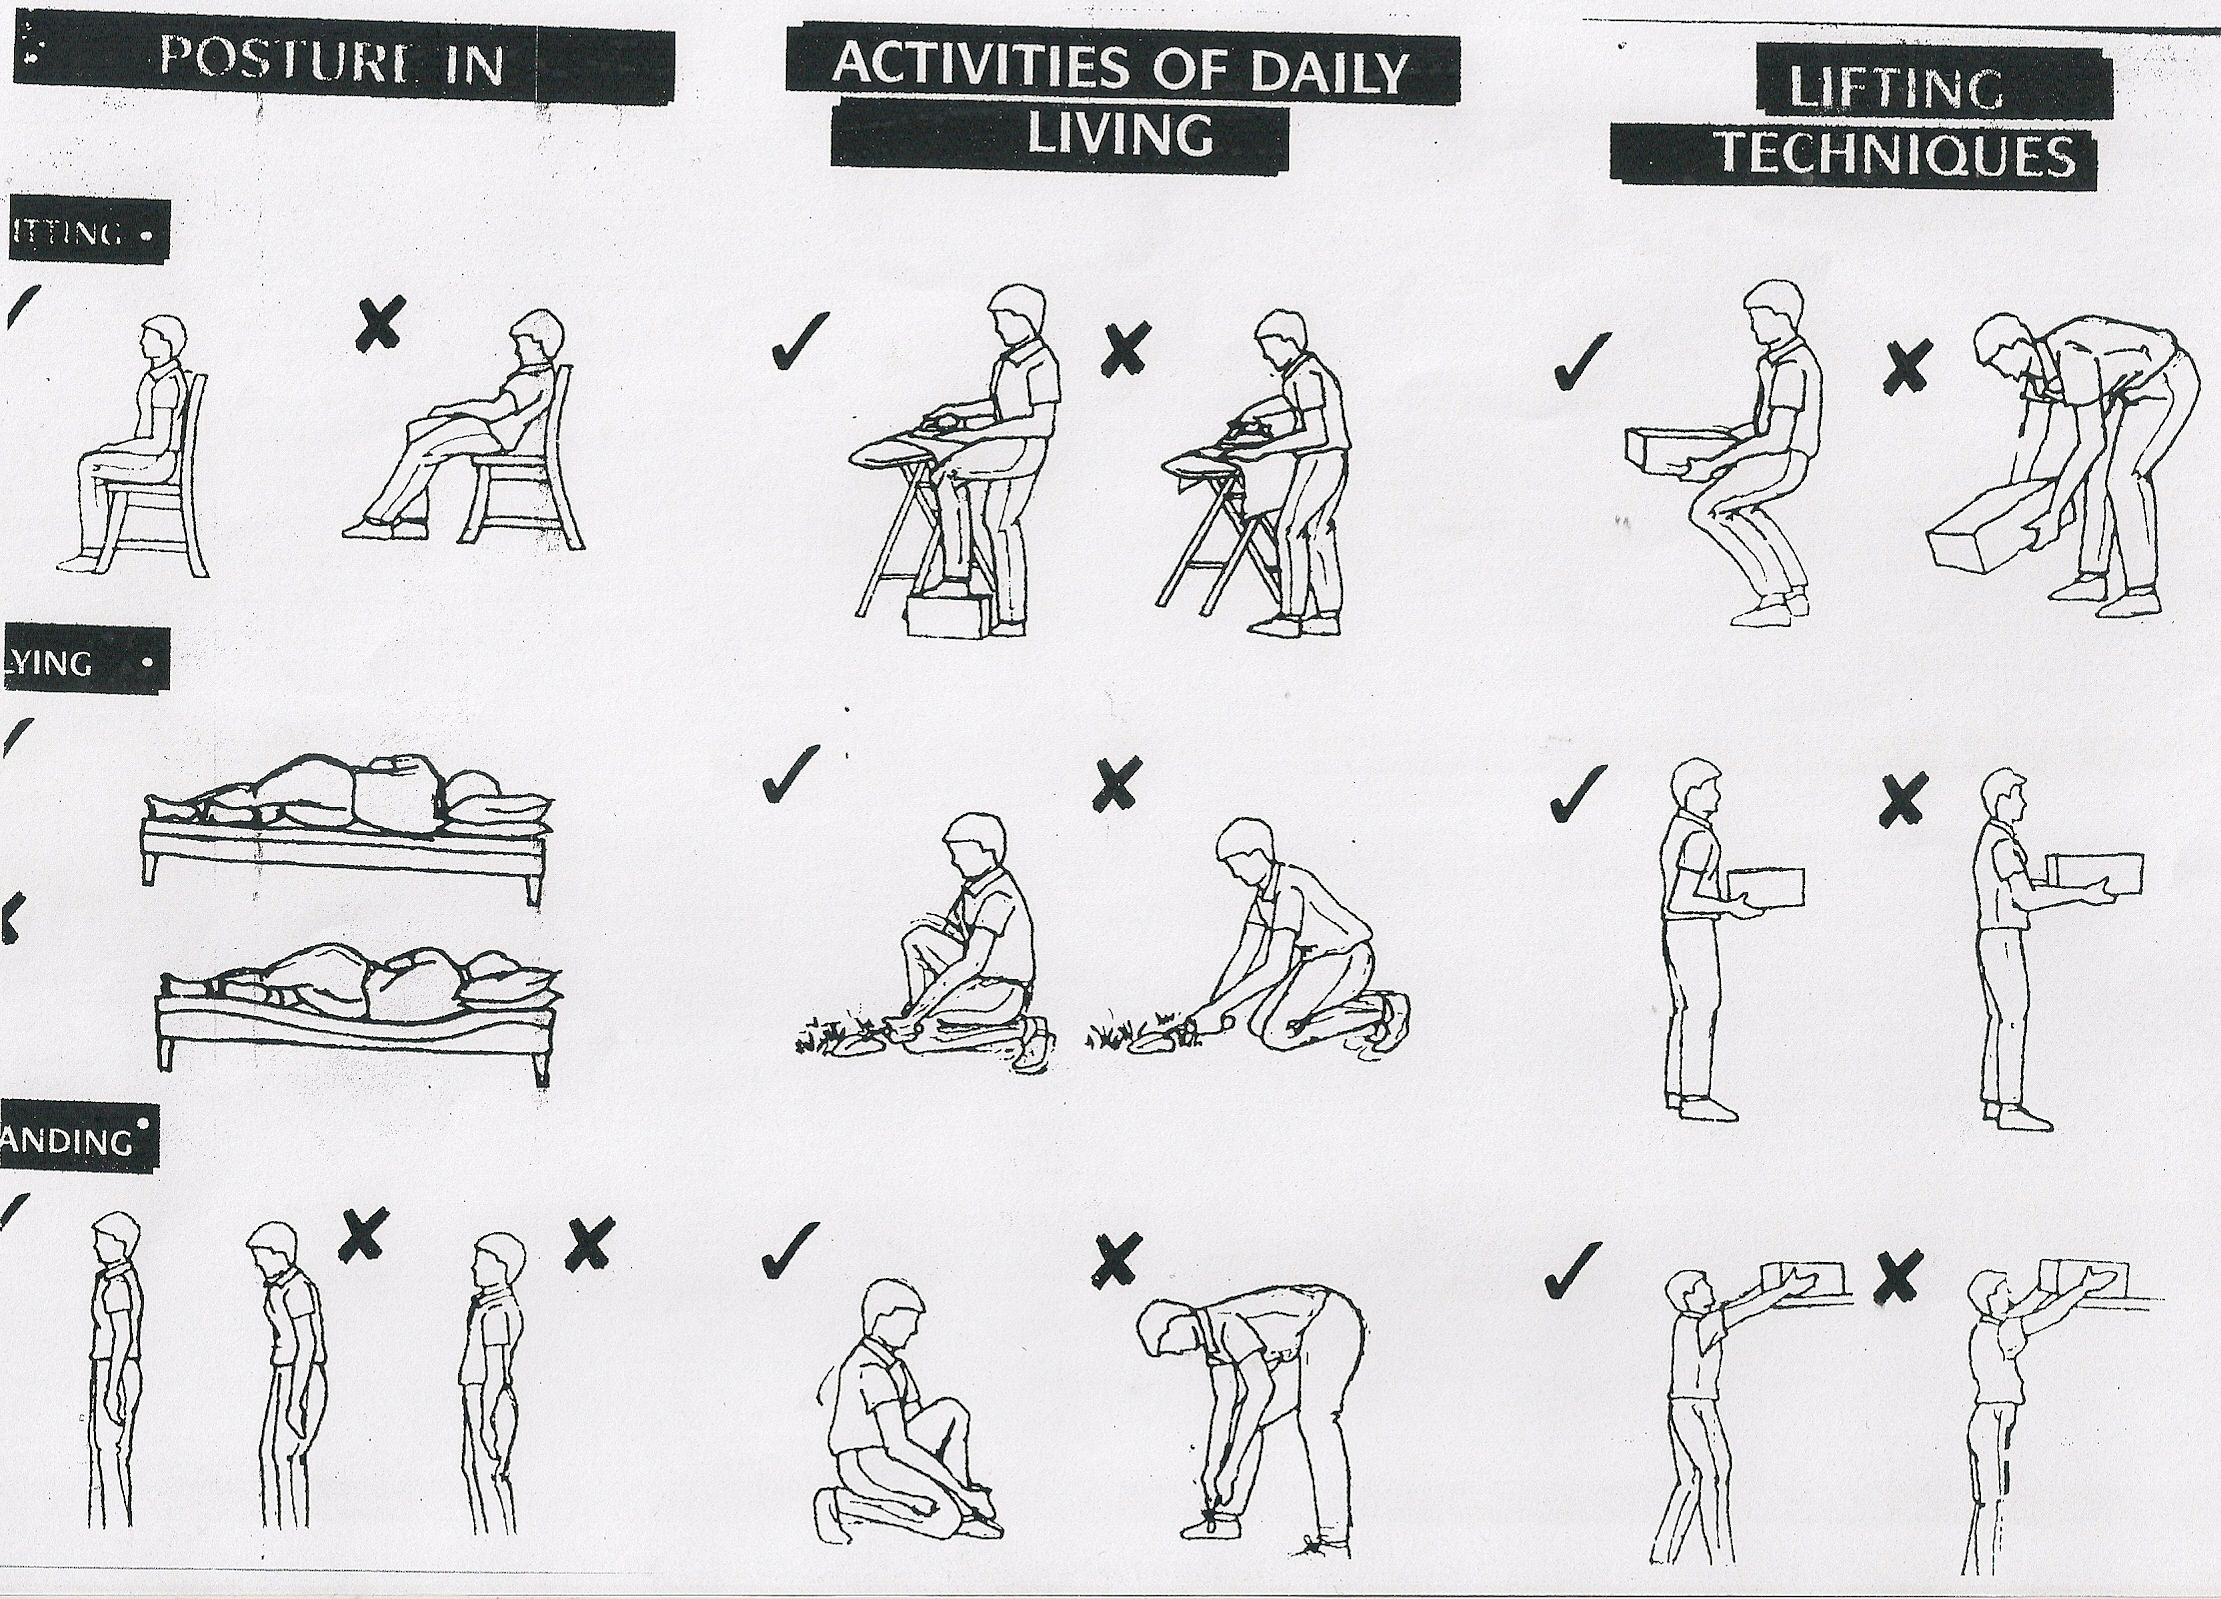 Choosing The Best Back Pain Exercises For Free And Natural Pain Relief